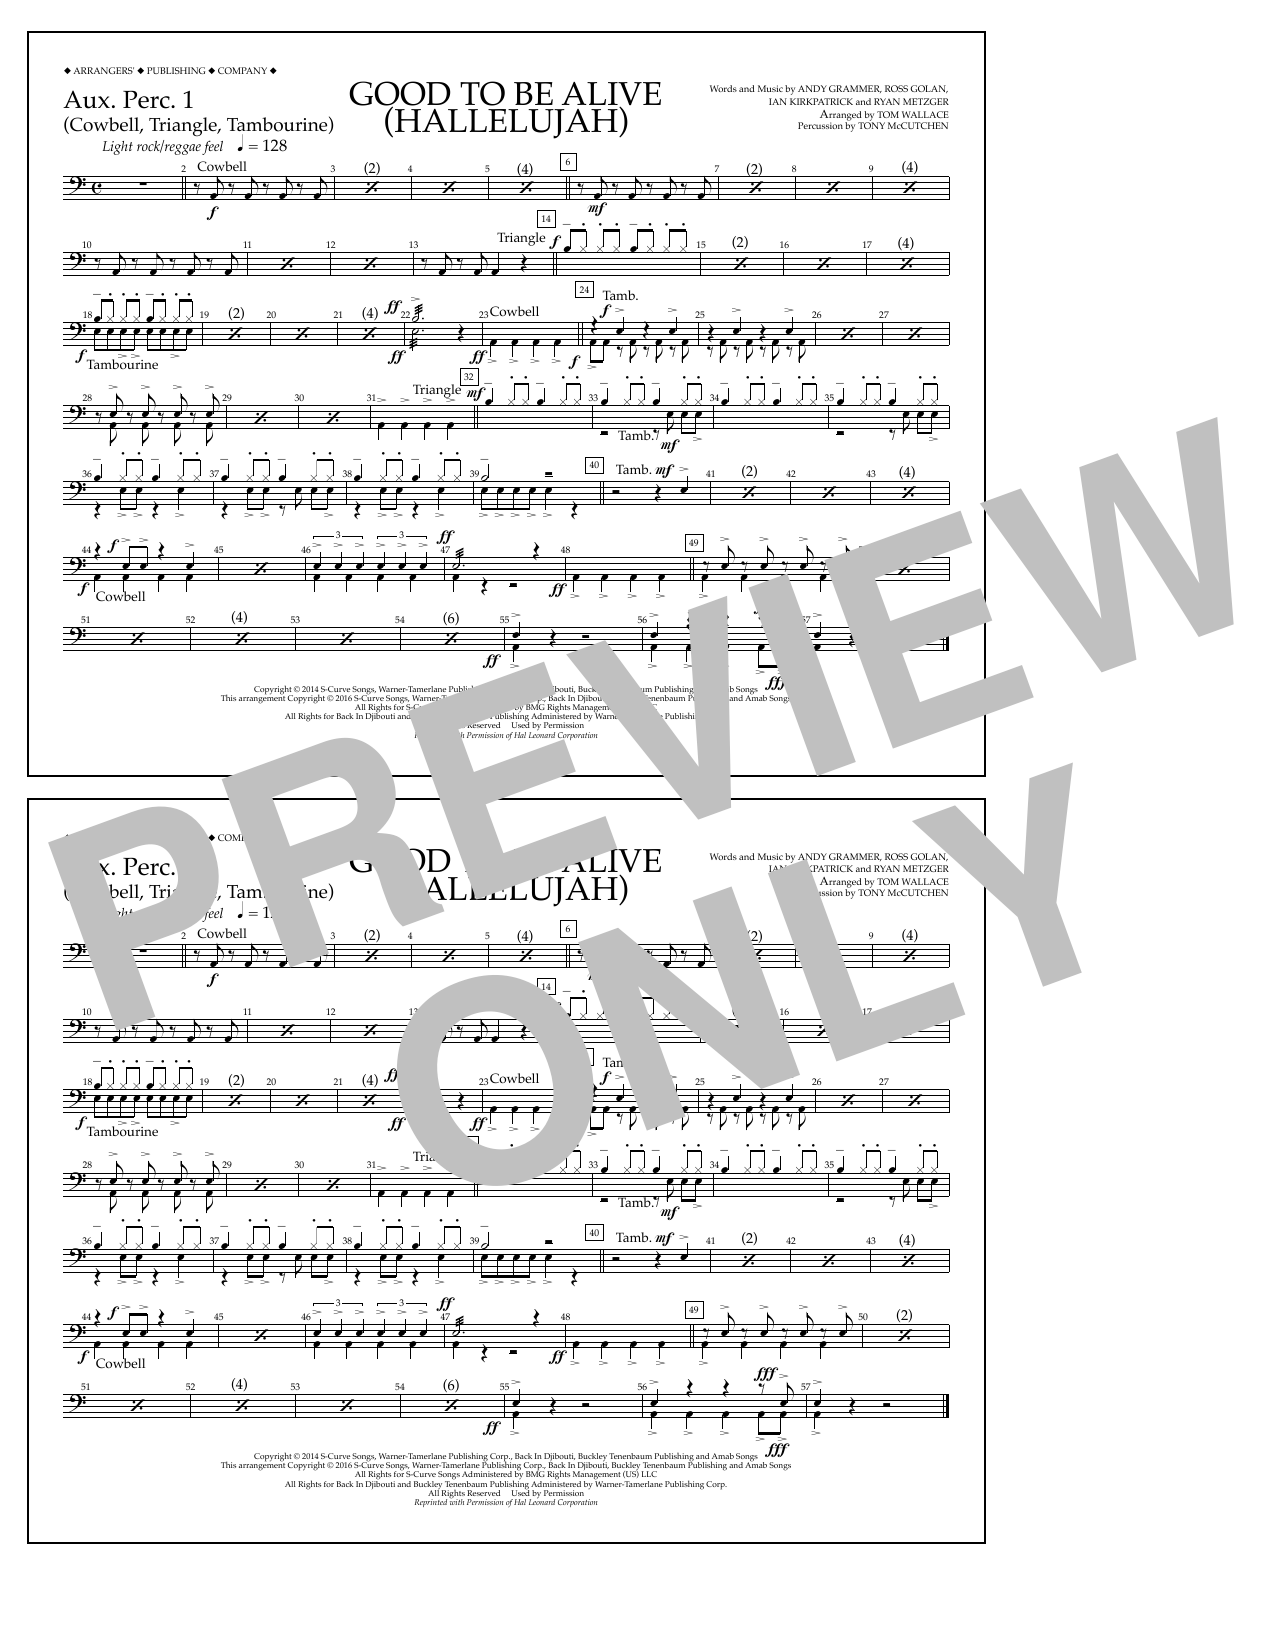 Good to Be Alive (Hallelujah) - Aux. Perc. 1 Sheet Music